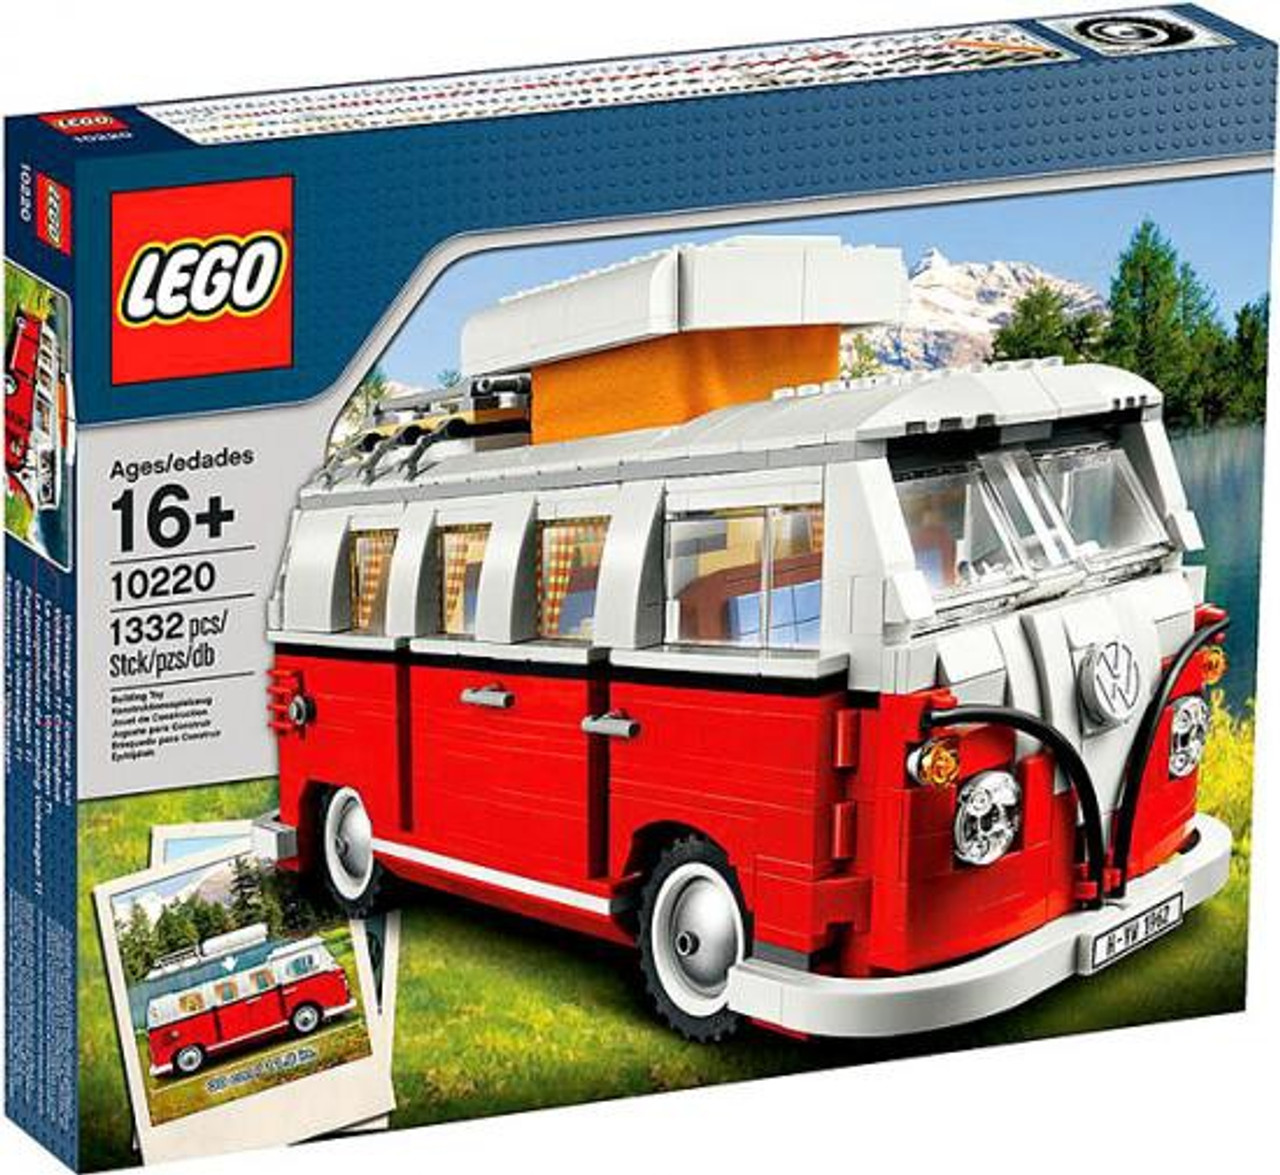 LEGO Exclusives Volkswagen T1 Camper Van Exclusive Set #10220